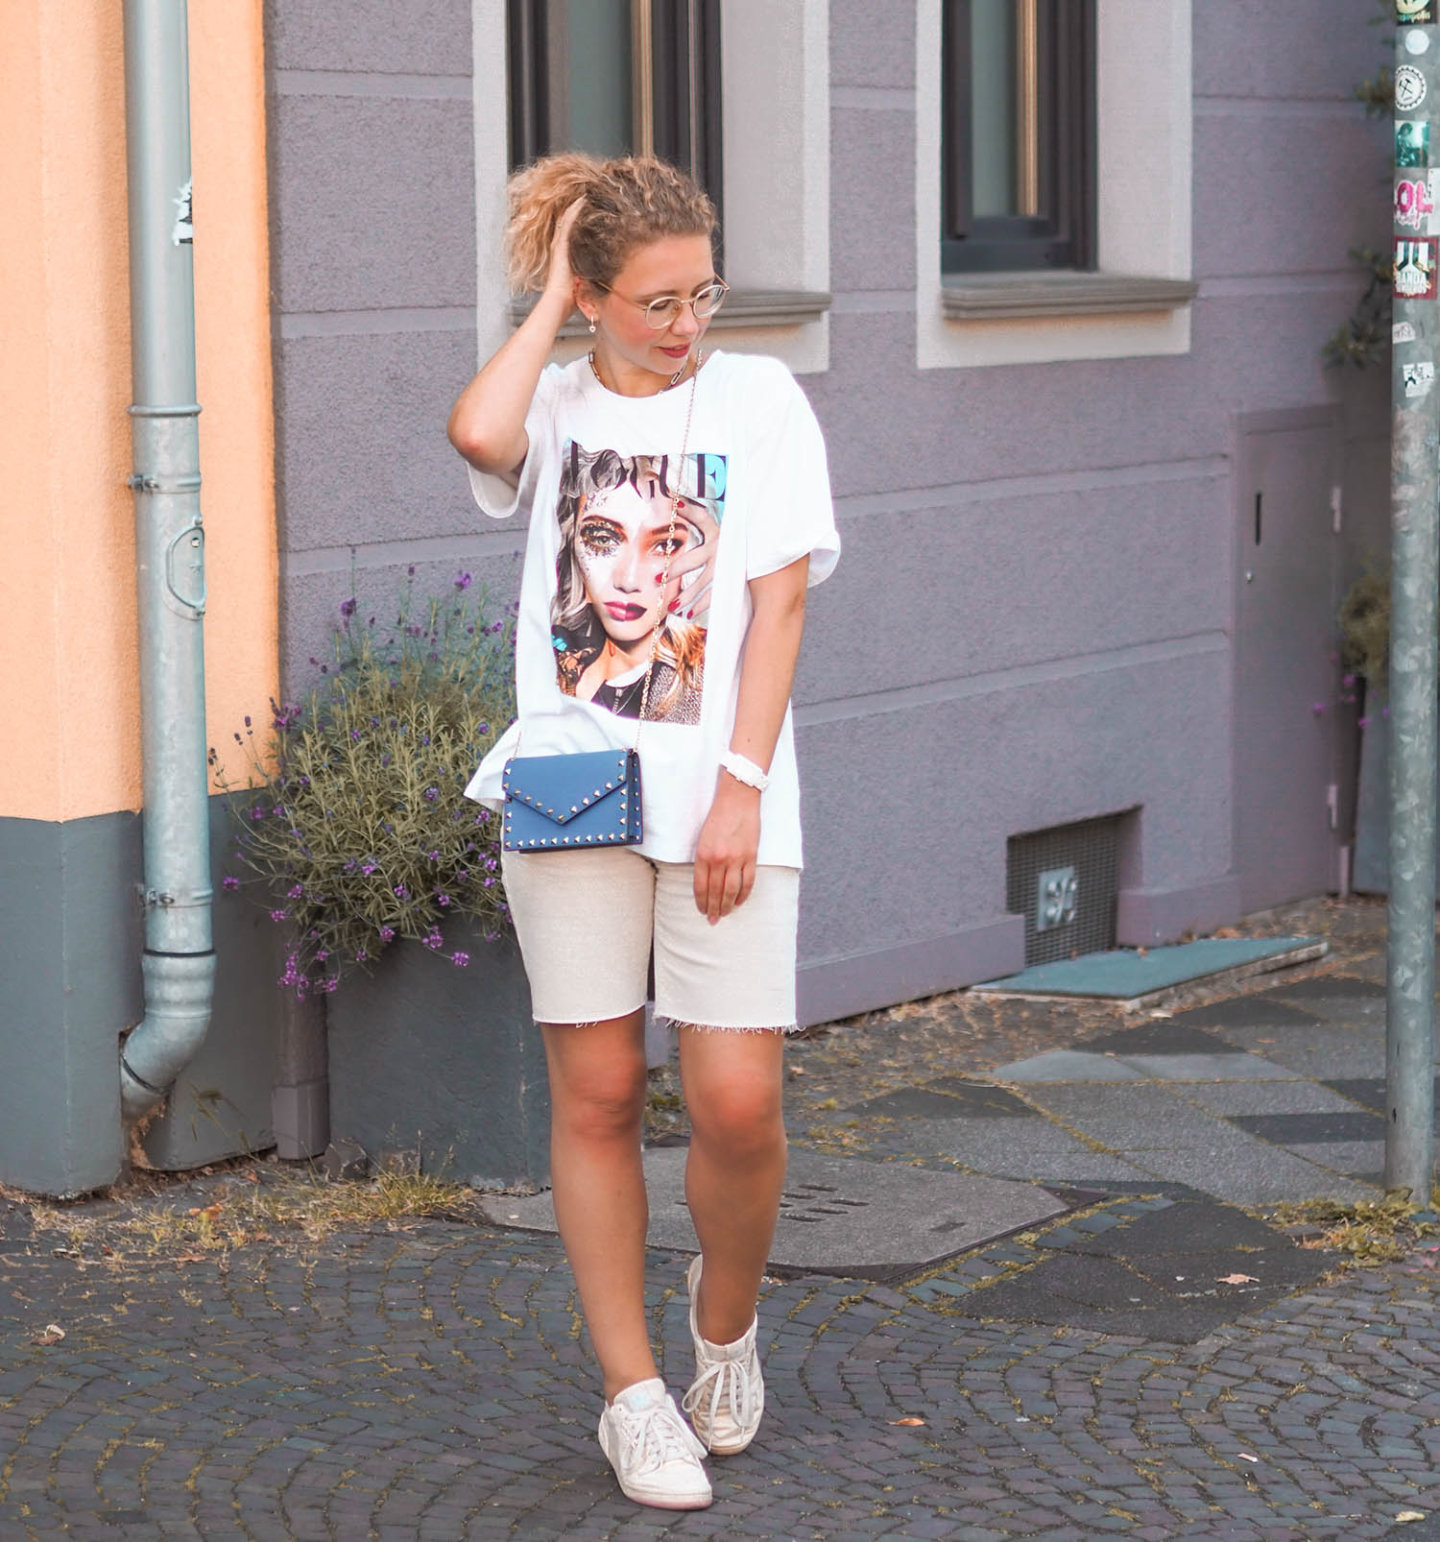 VOGUE T-Shirt Streetstyle von Fashionblogger Kationette